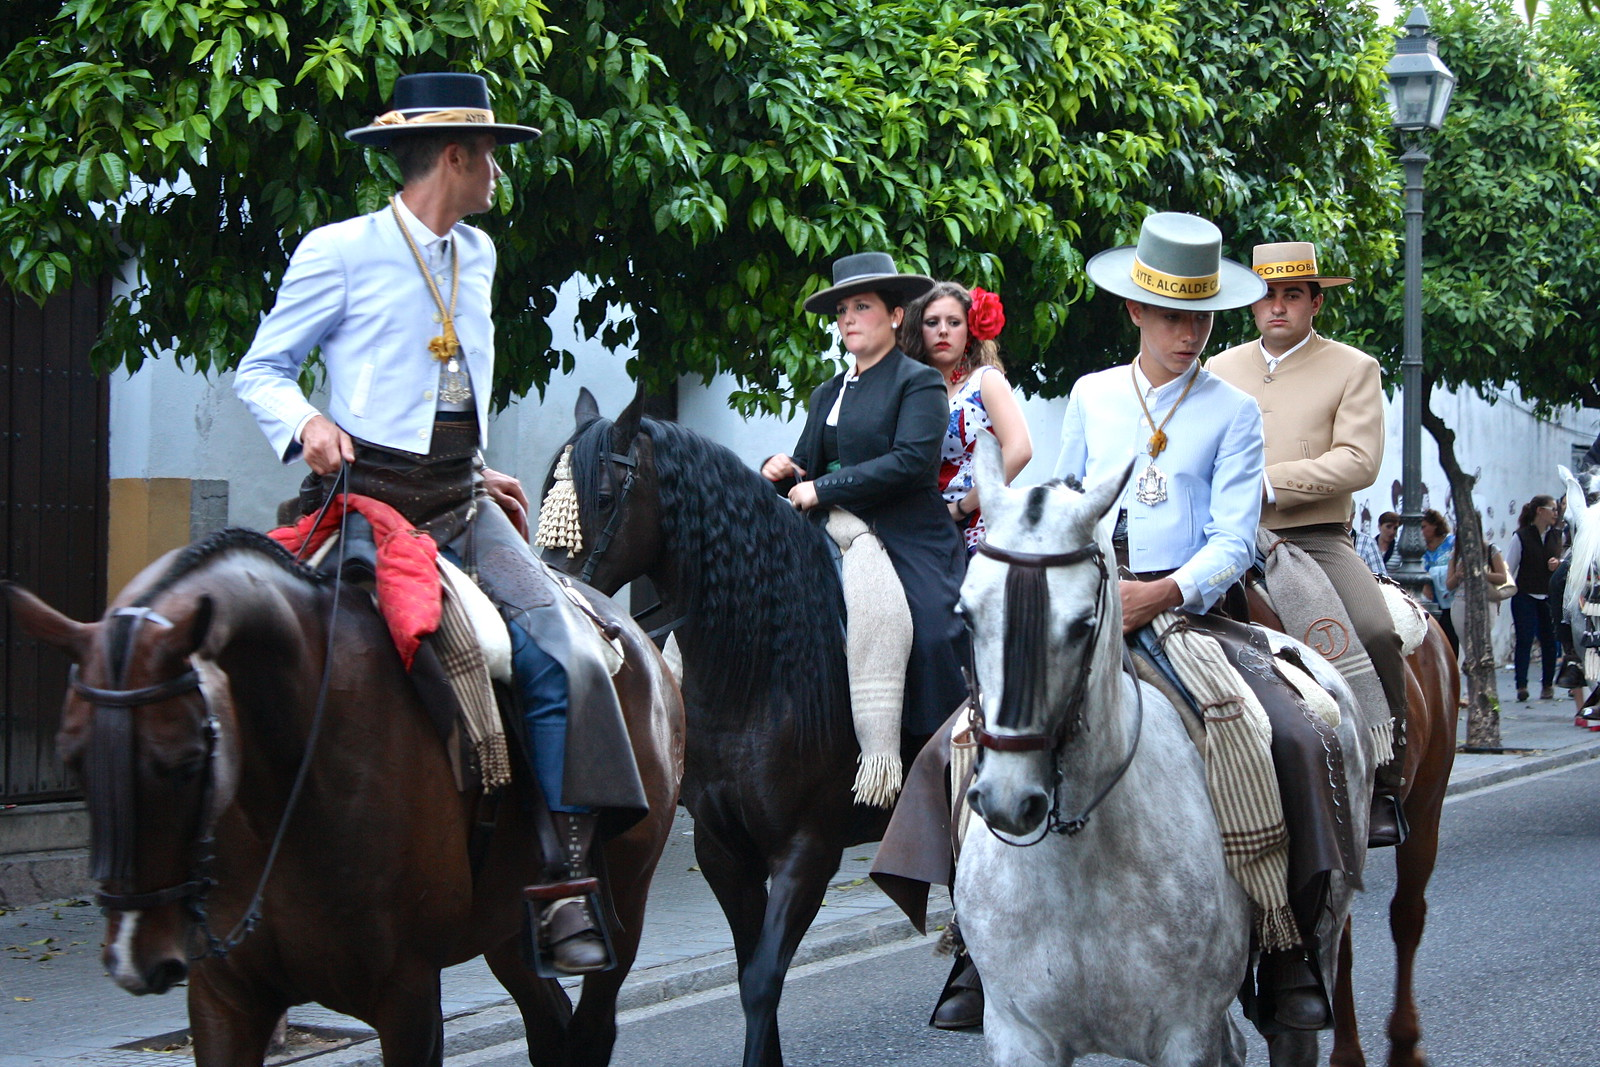 Horse-mounted riders in Córdoba